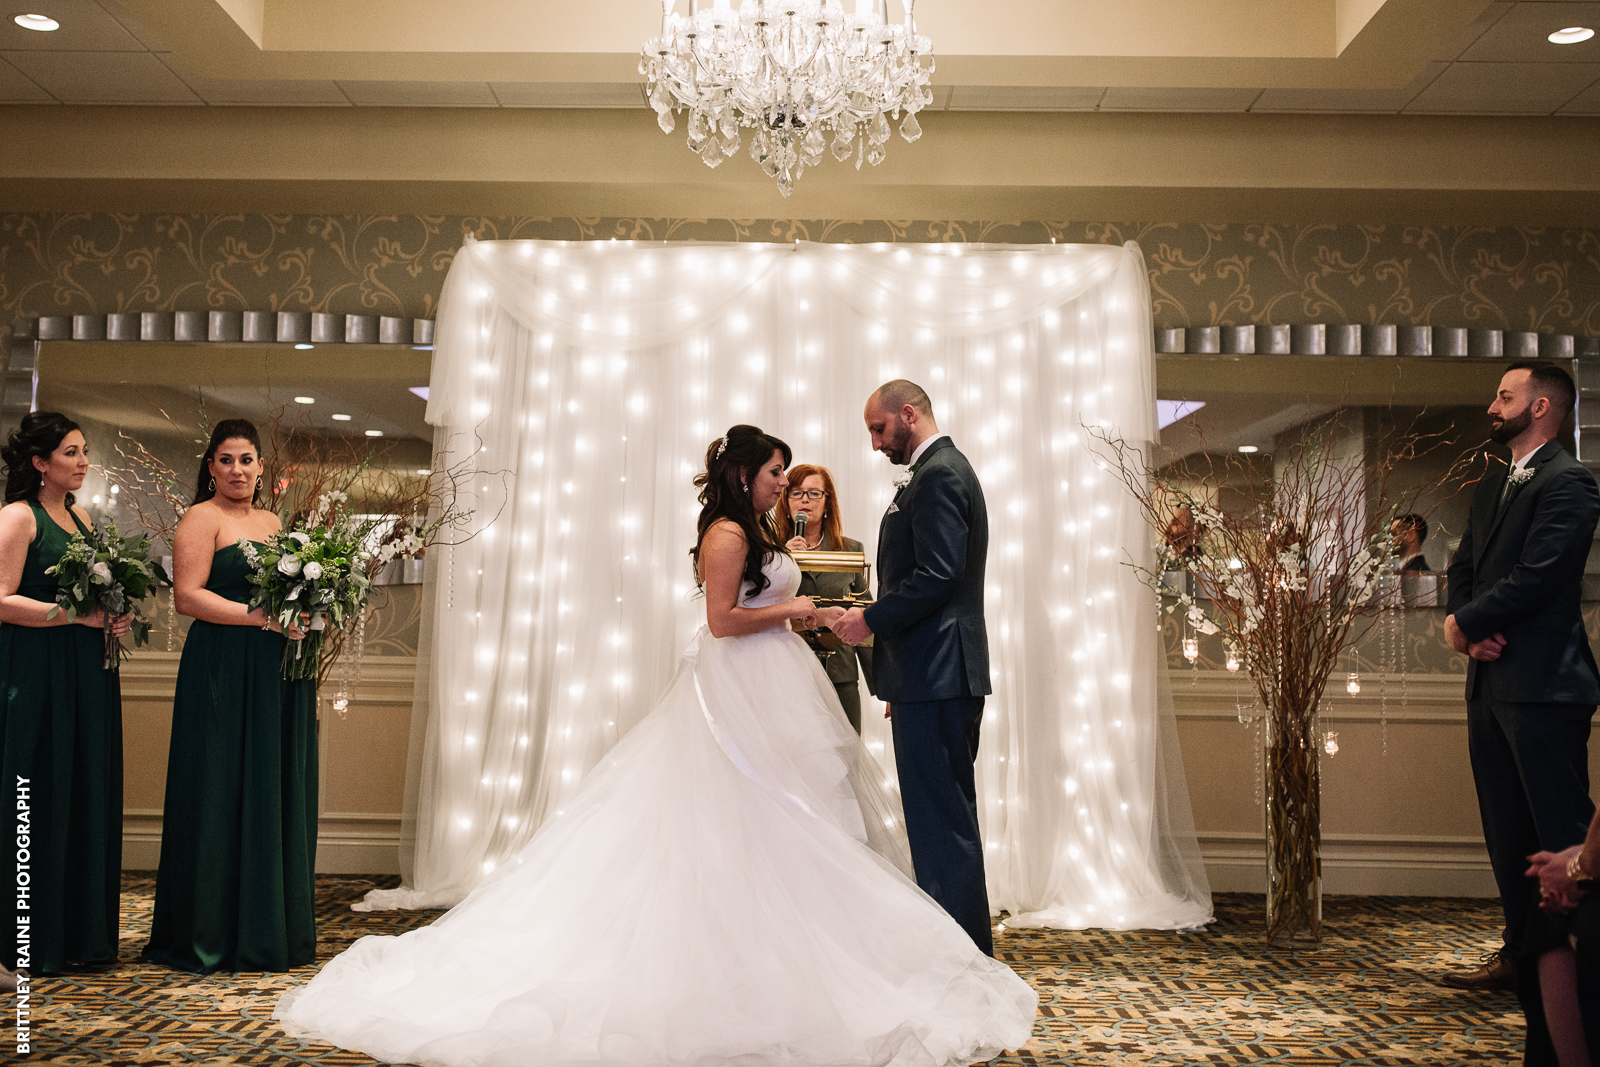 We love the sparkly backdrop Stephanie and Tyler used for their ceremony in the Emerald Ballroom!